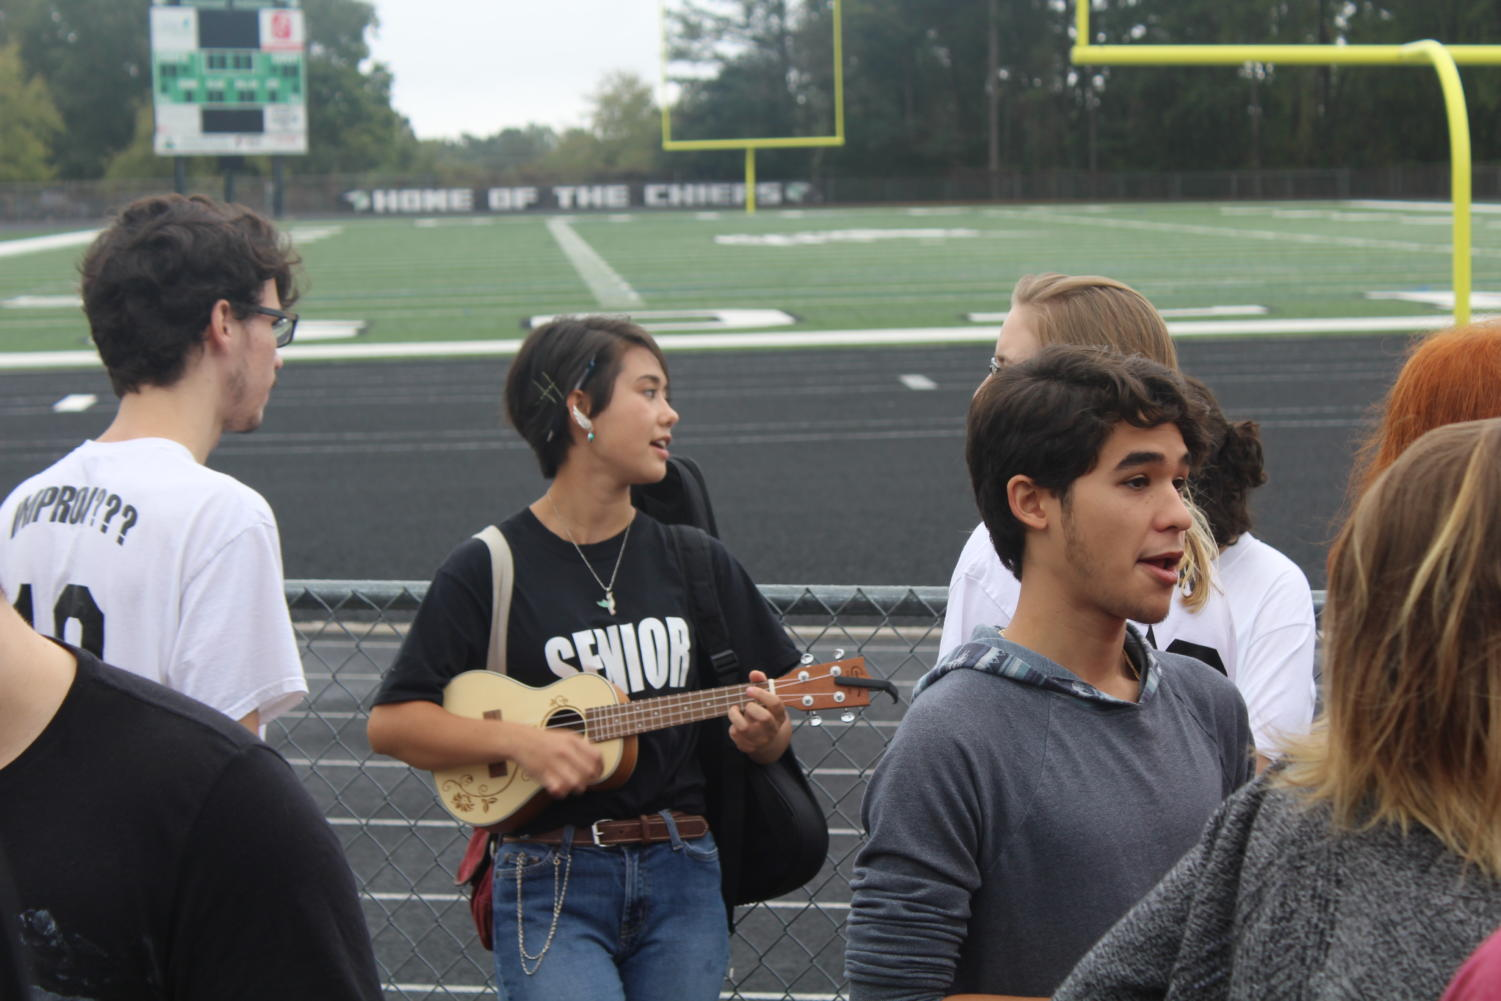 Senior Kylie Dickensen played her ukulele during the wait between picture taking